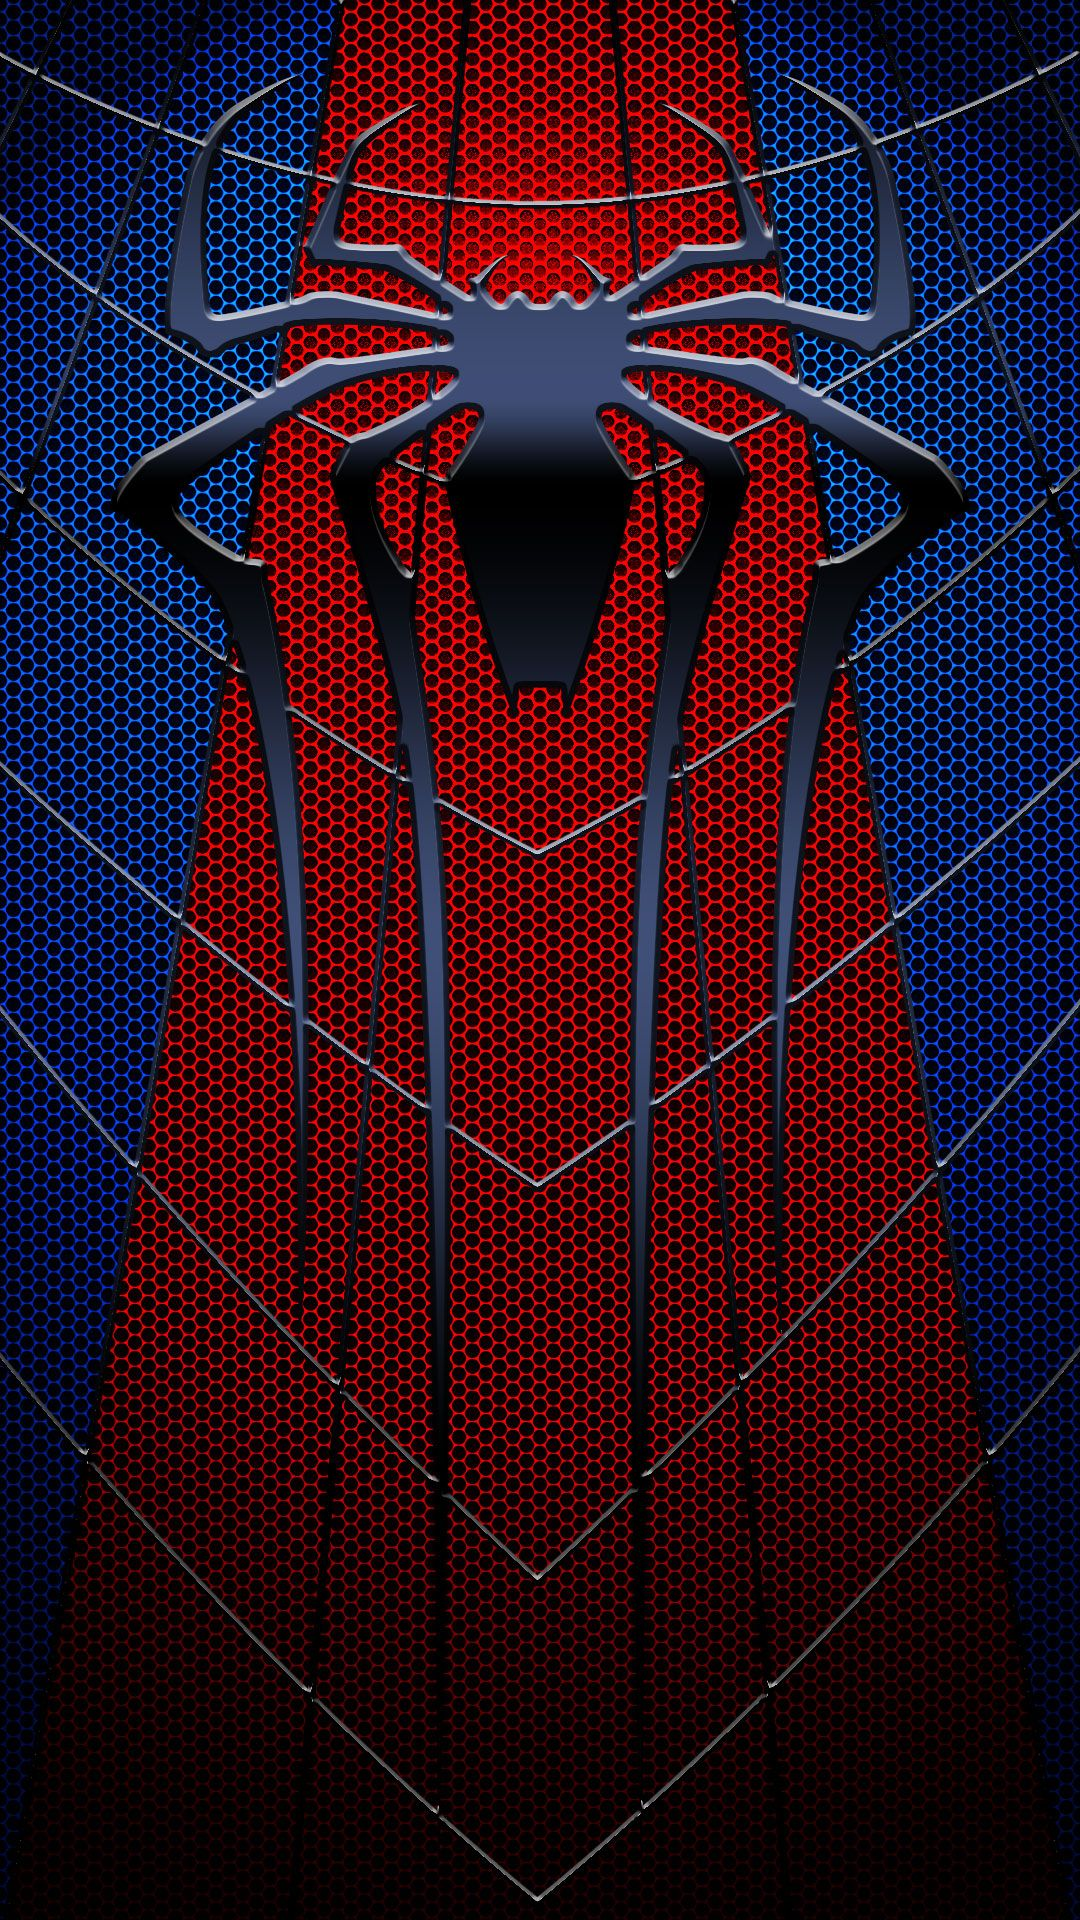 Spider Man Logo Wallpapers Top Free Spider Man Logo Backgrounds